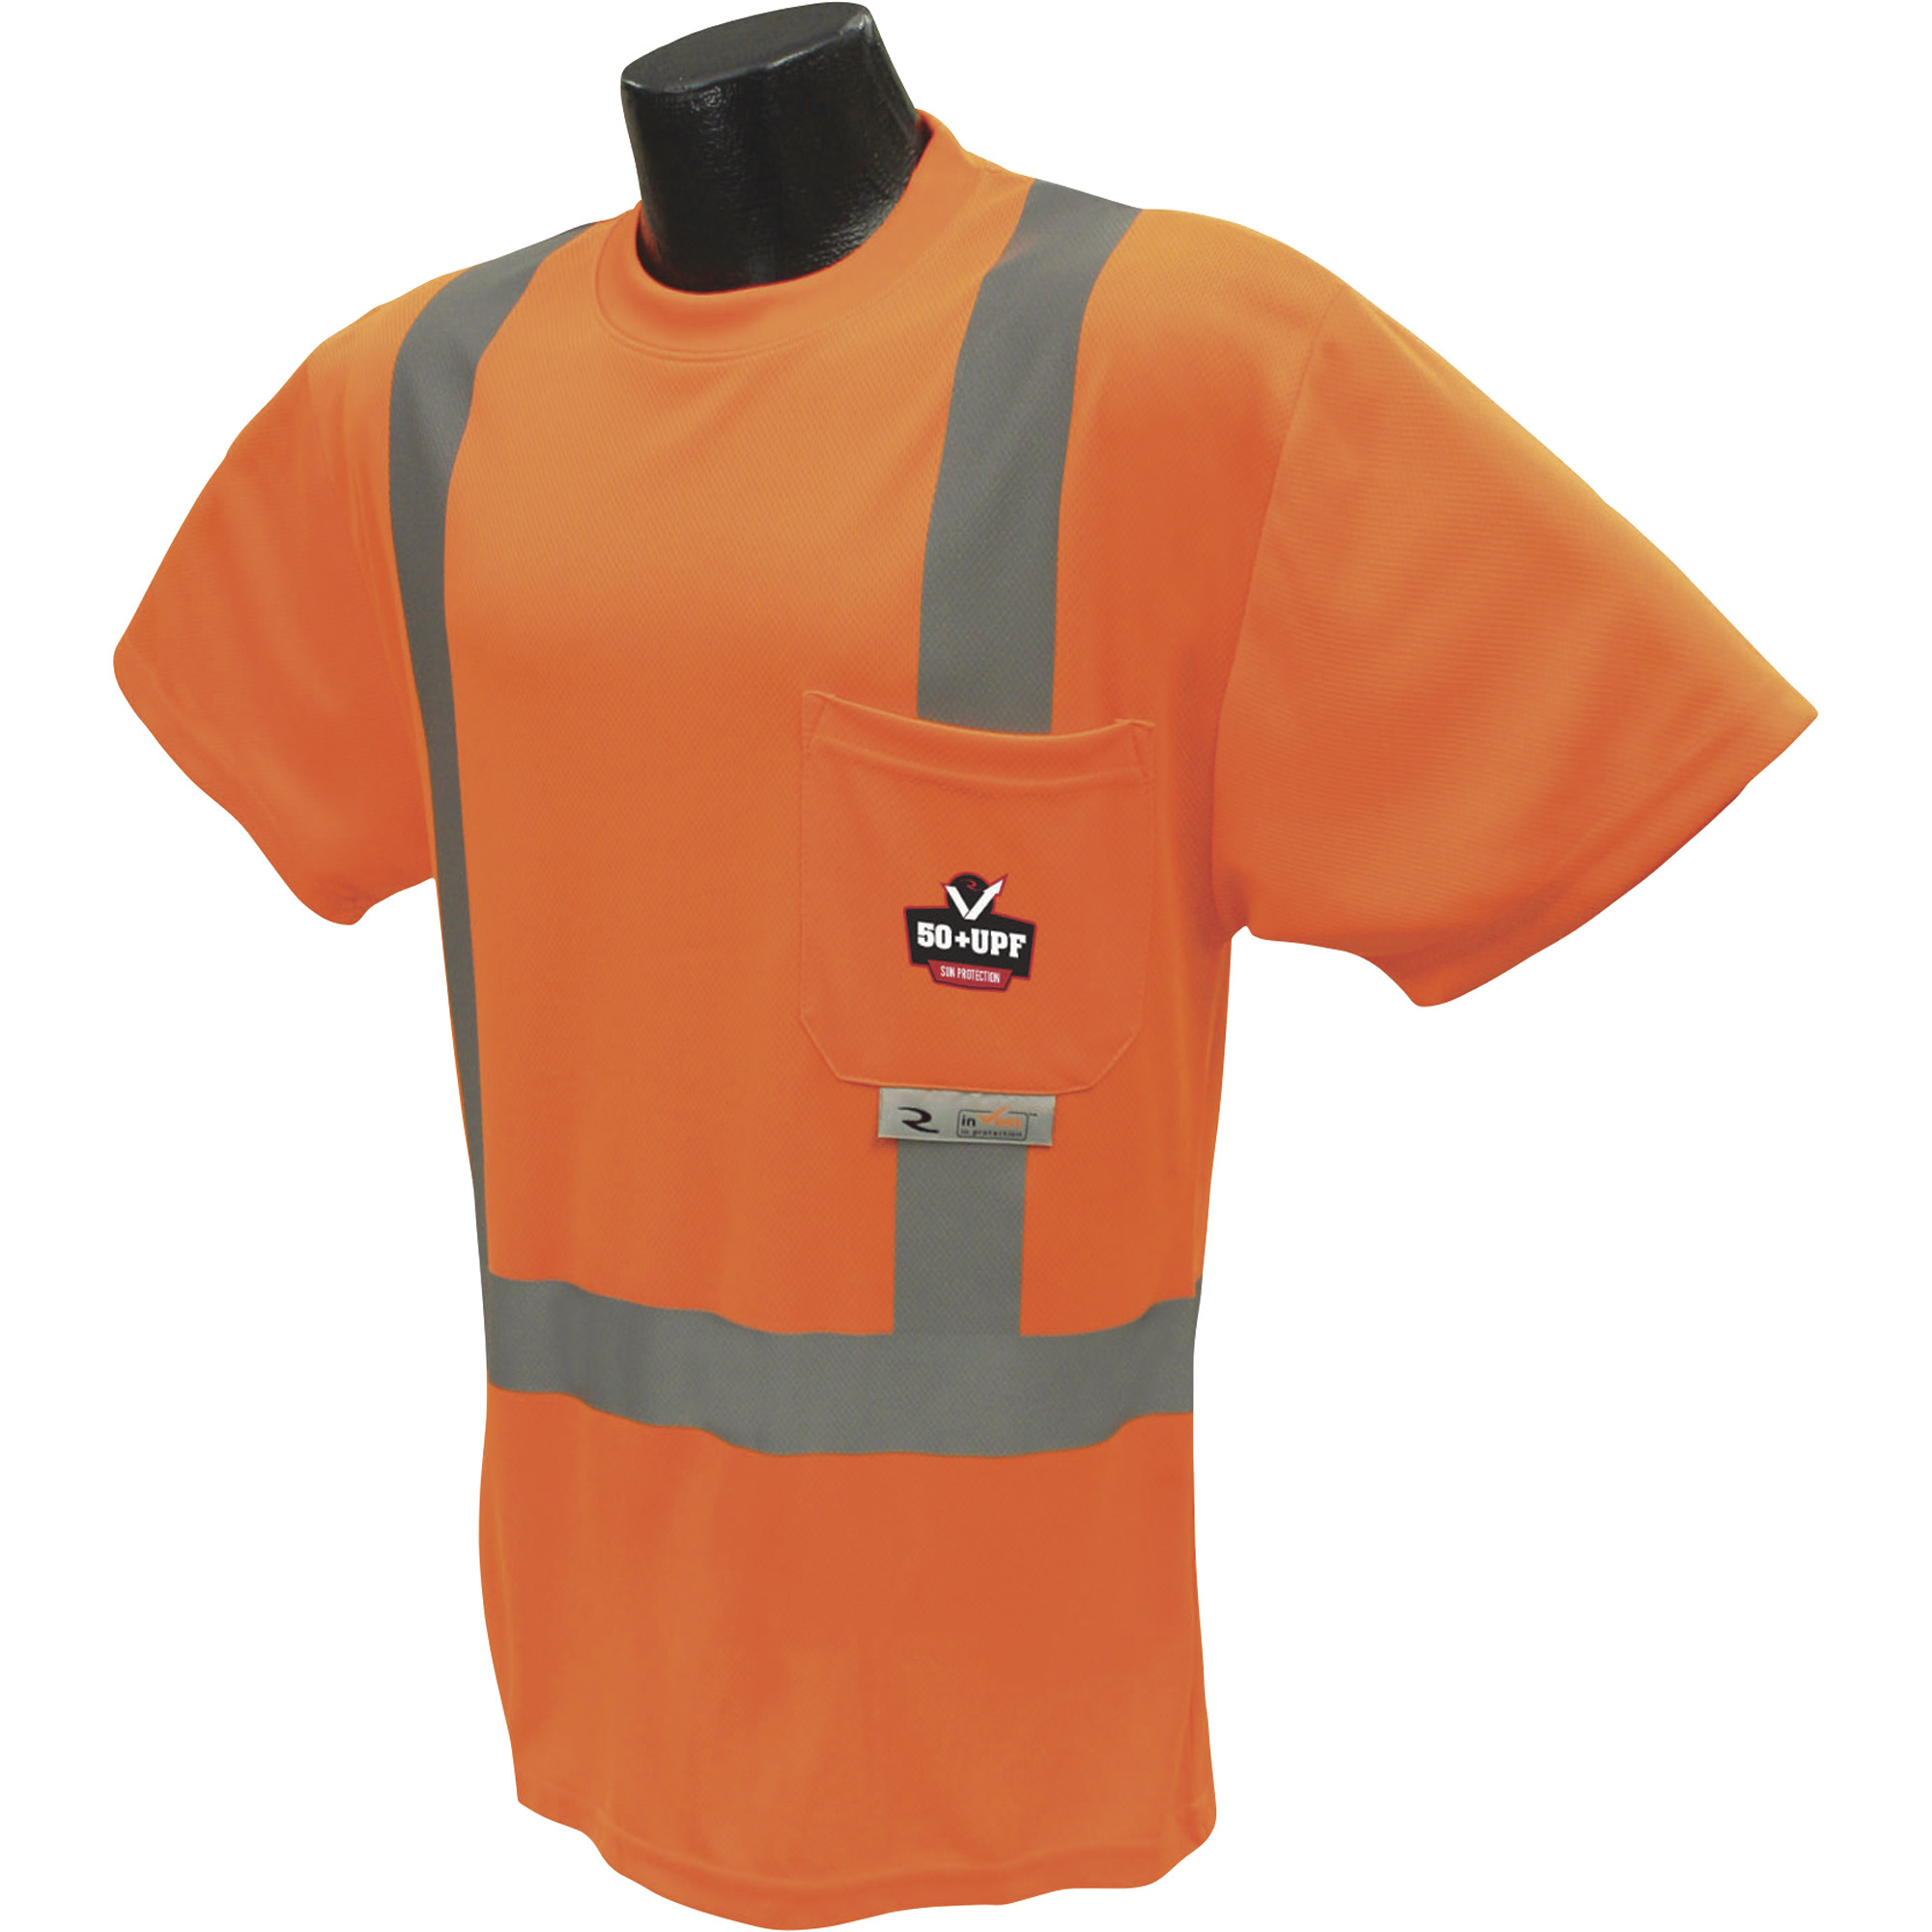 Radians radwear men 39 s class 2 high visibility short sleeve for Uv protection t shirt